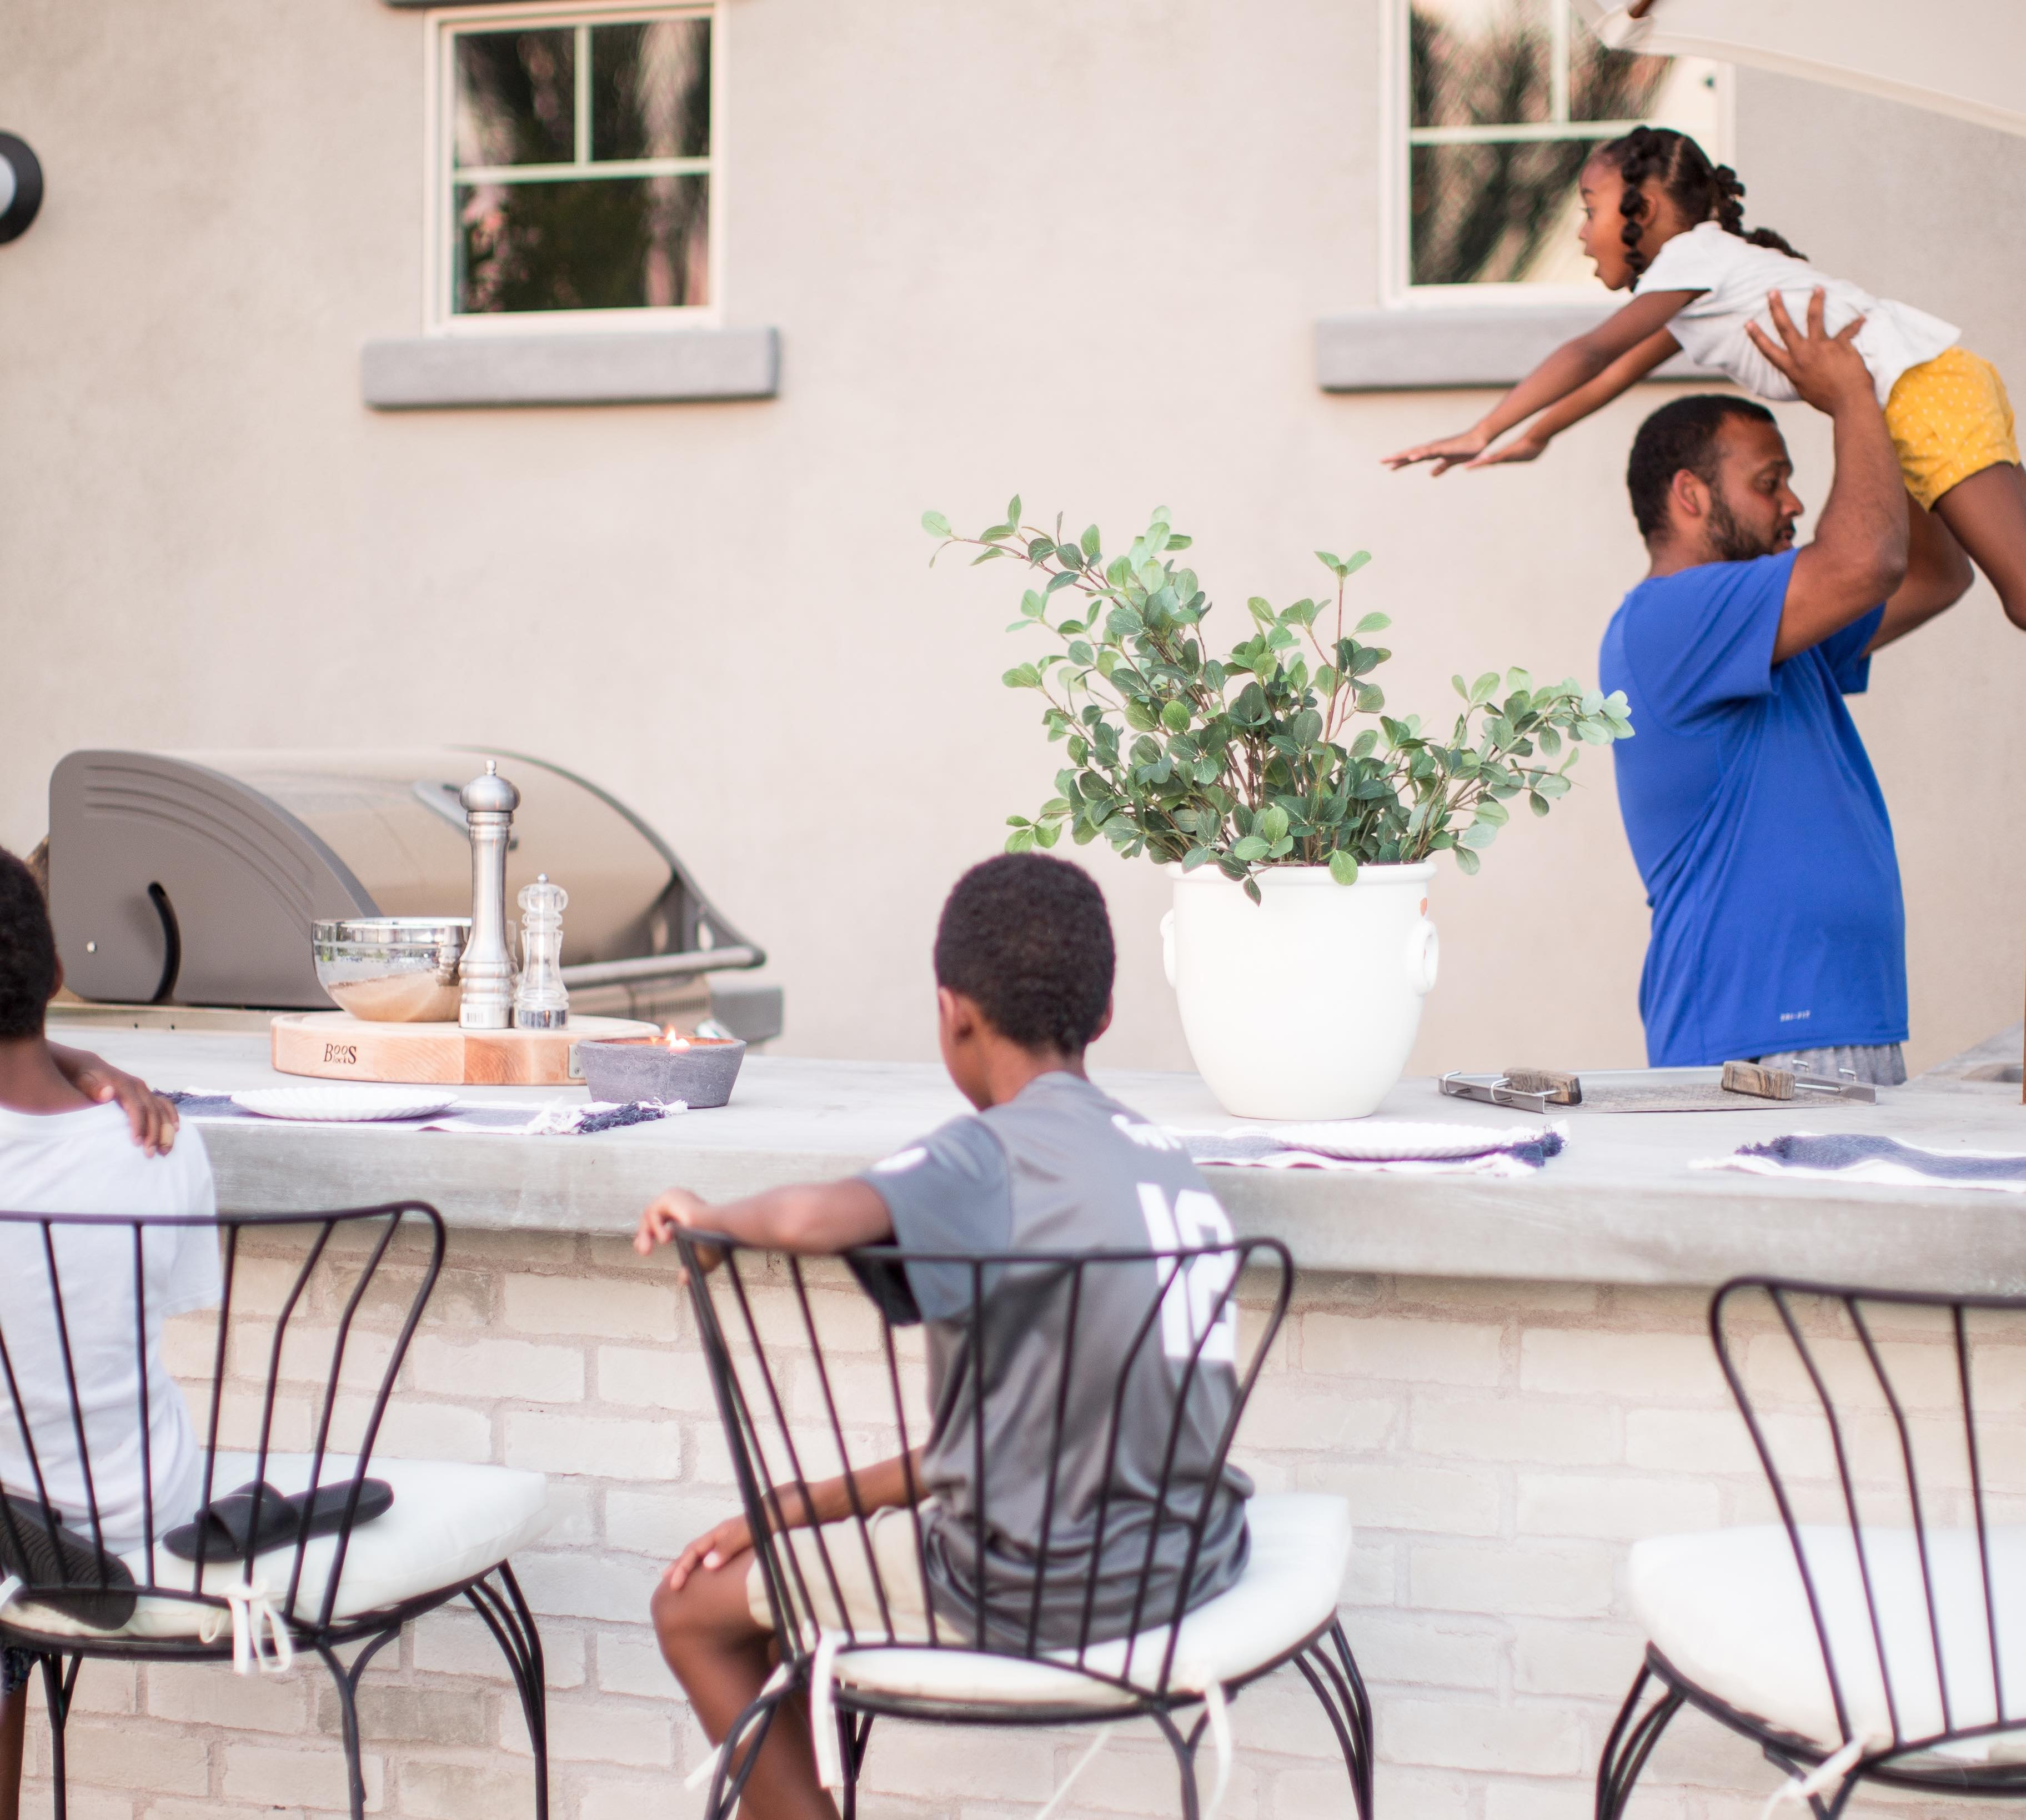 How to Organize Your Outdoor Kitchen Or Grill Area for Maximum Efficiency